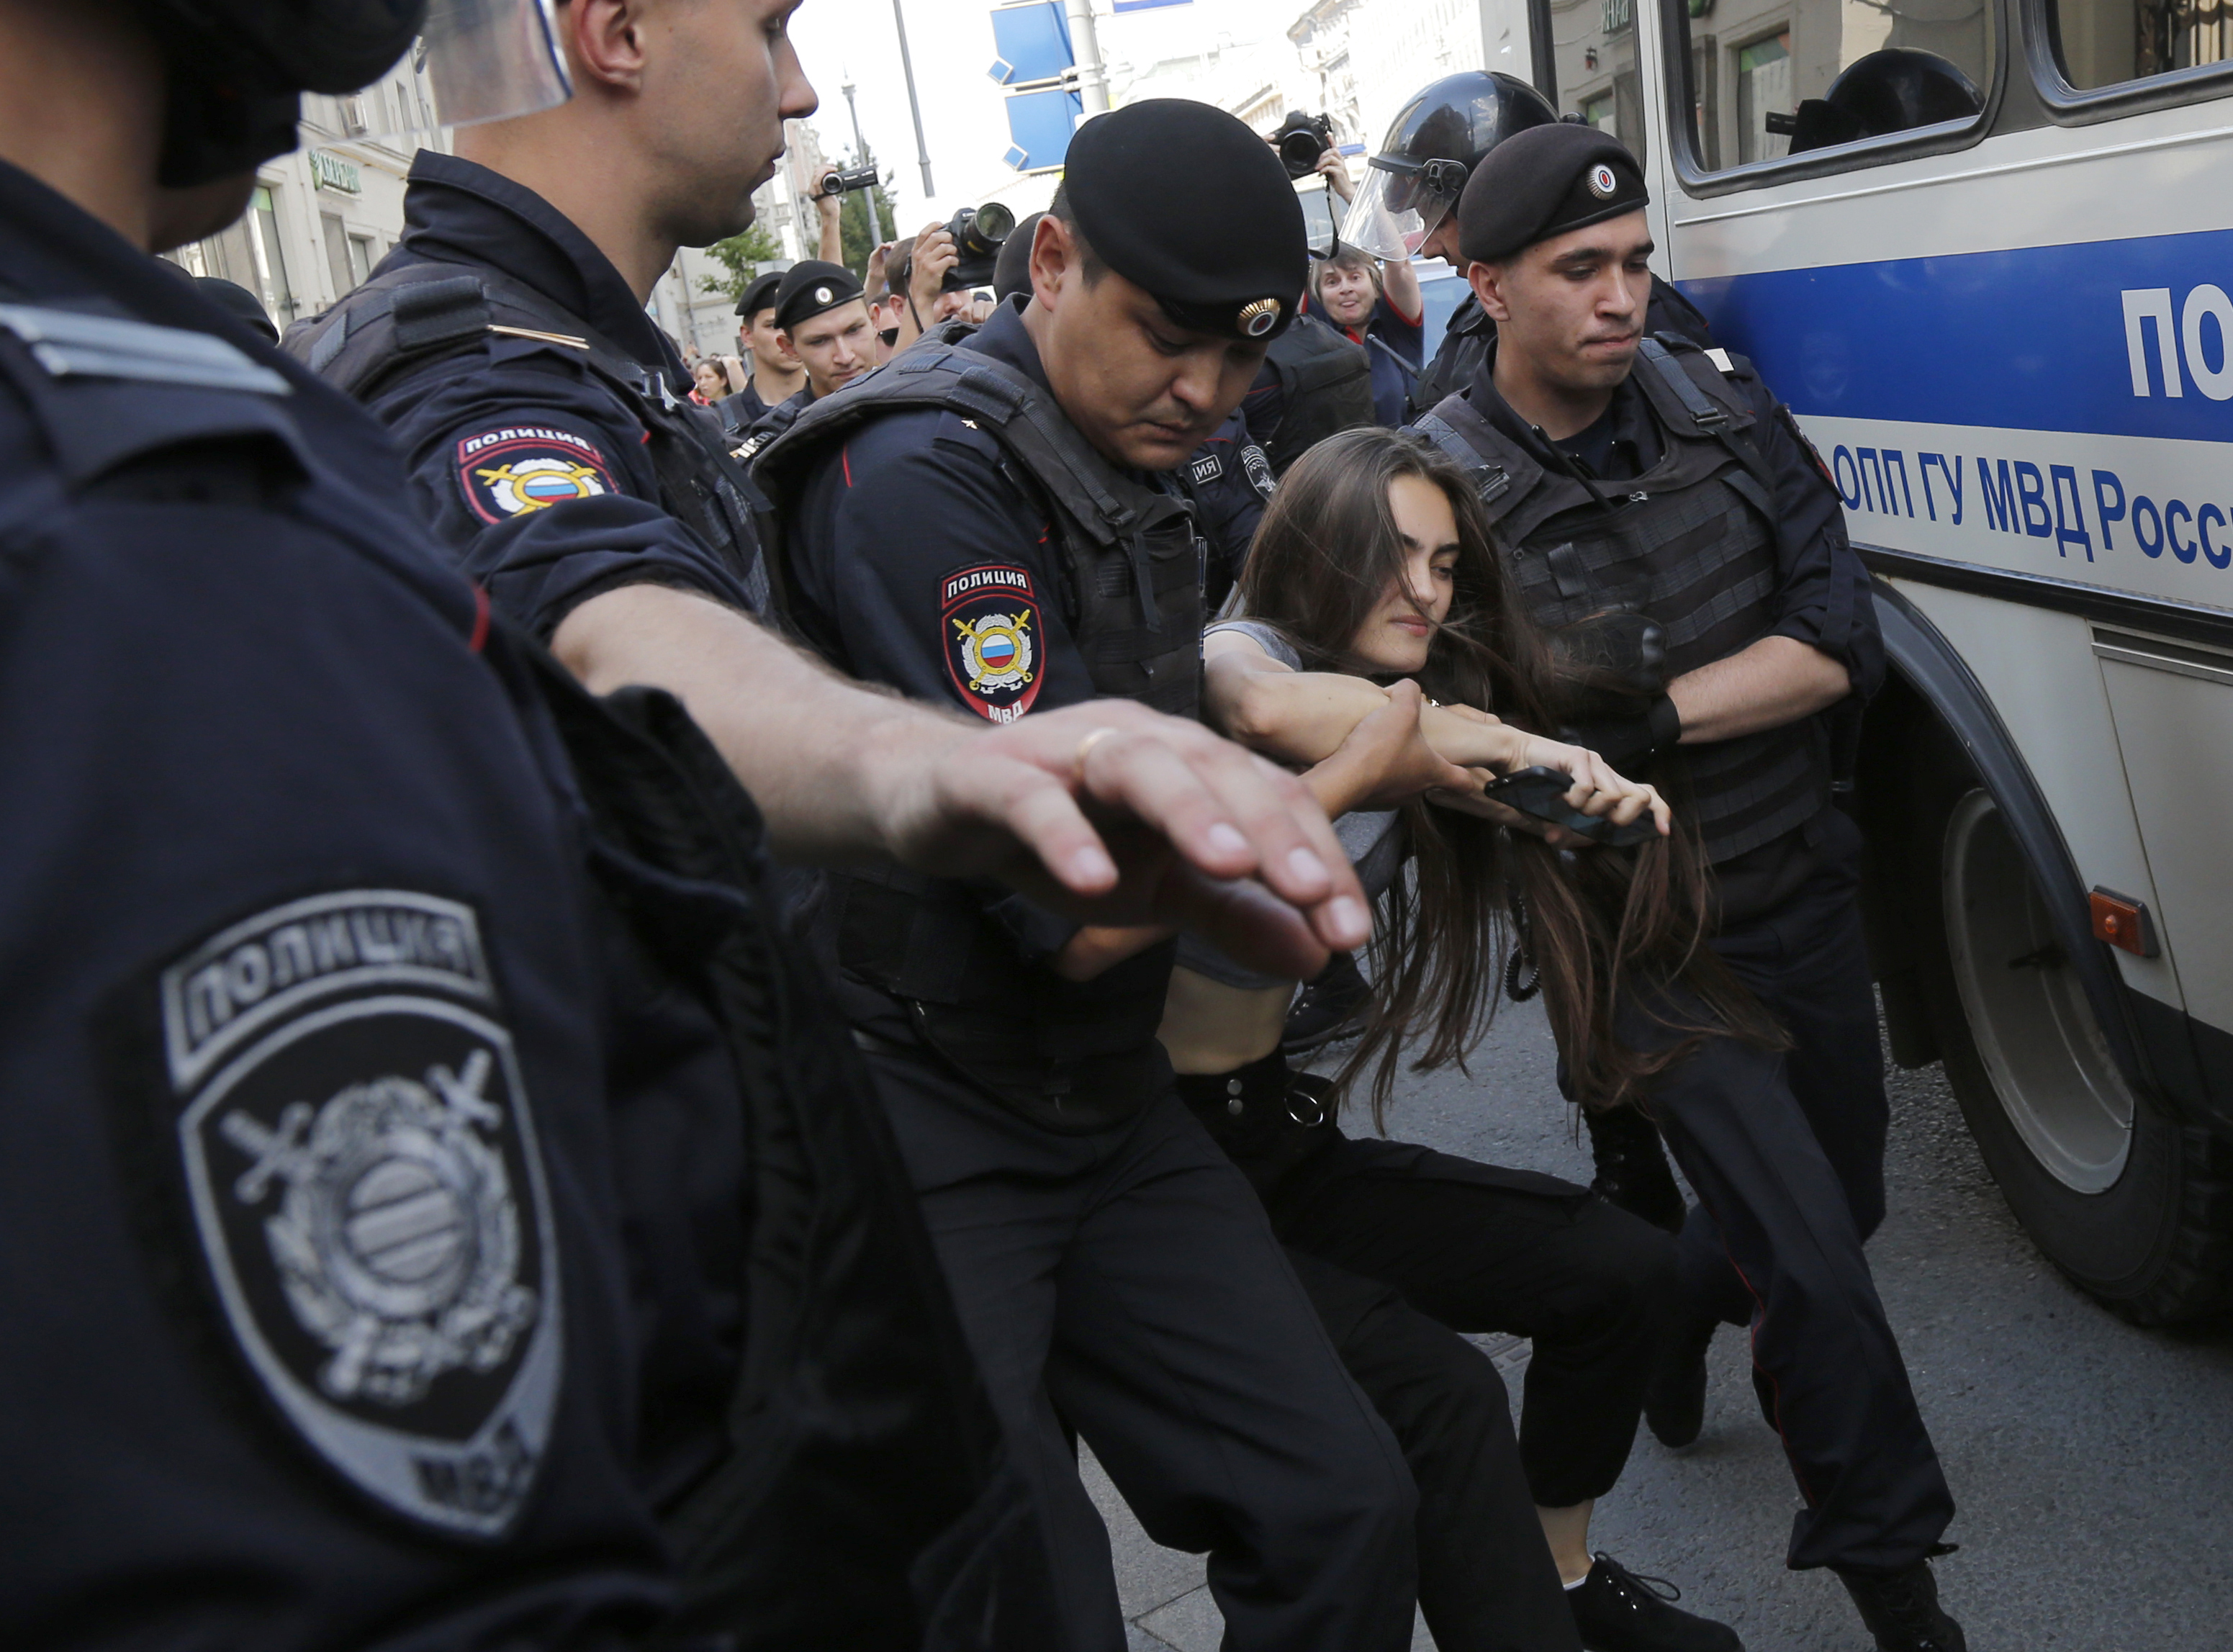 Russian police arrest hundreds at Moscow election protest